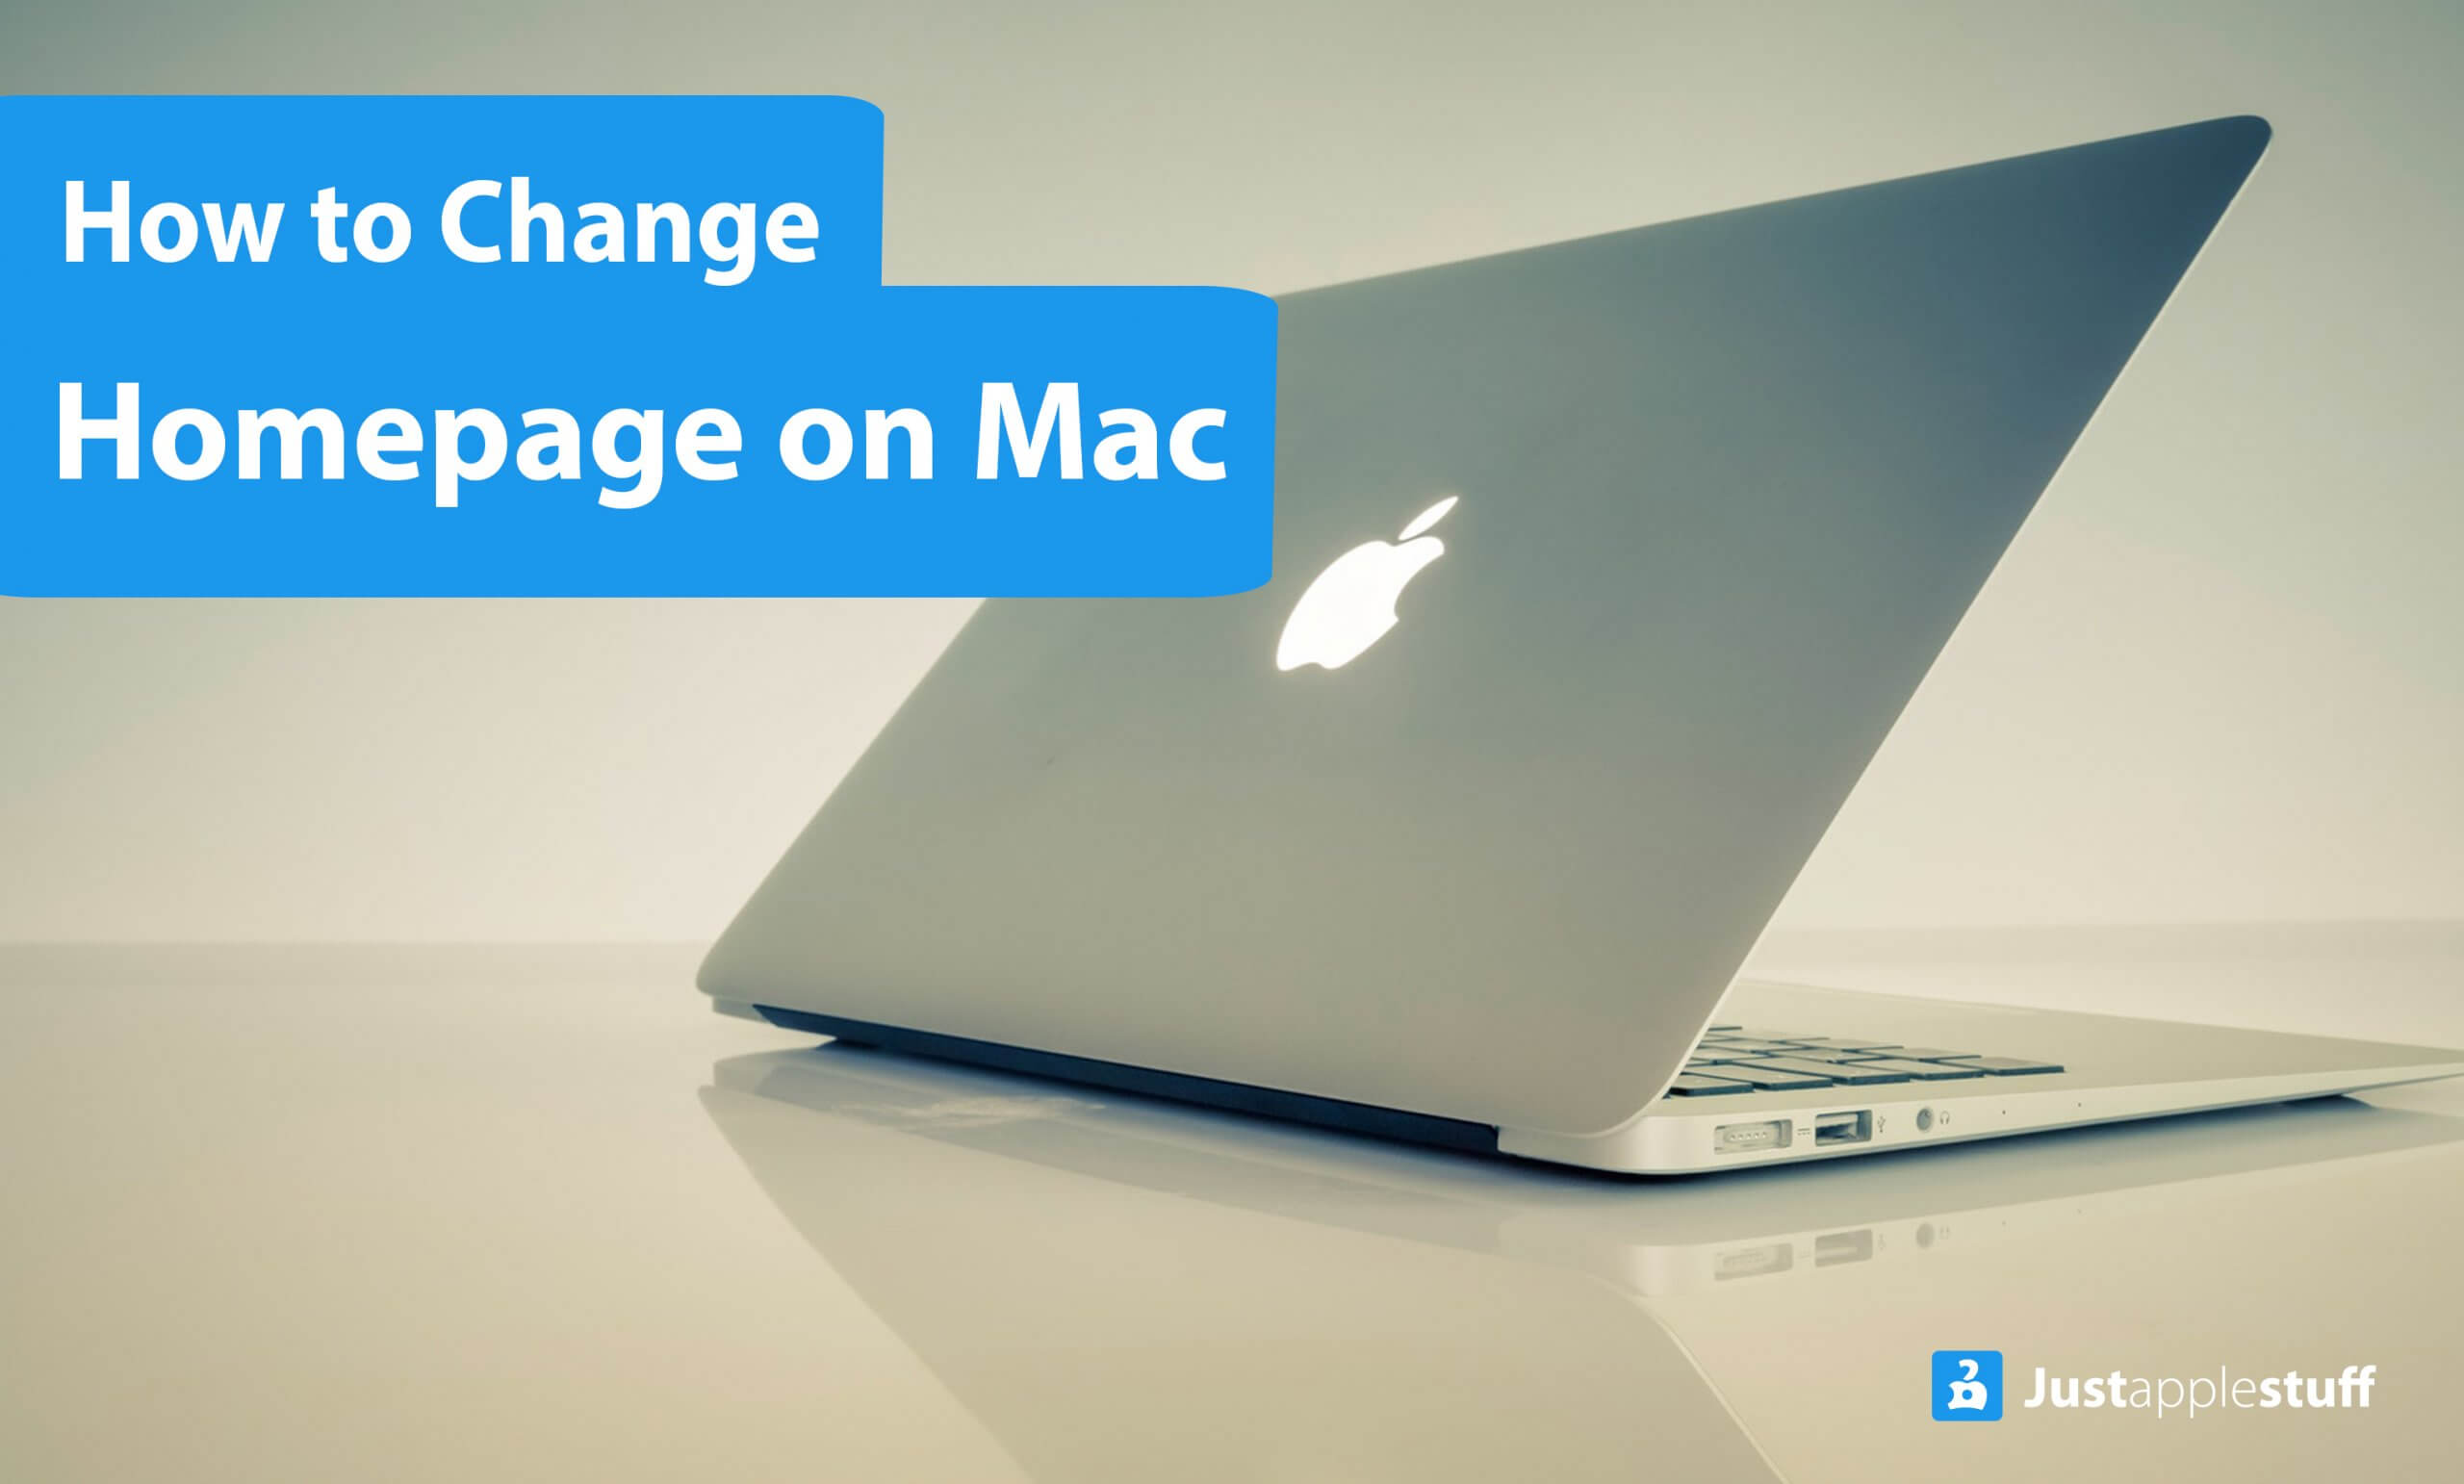 How to Change the Homepage on Mac